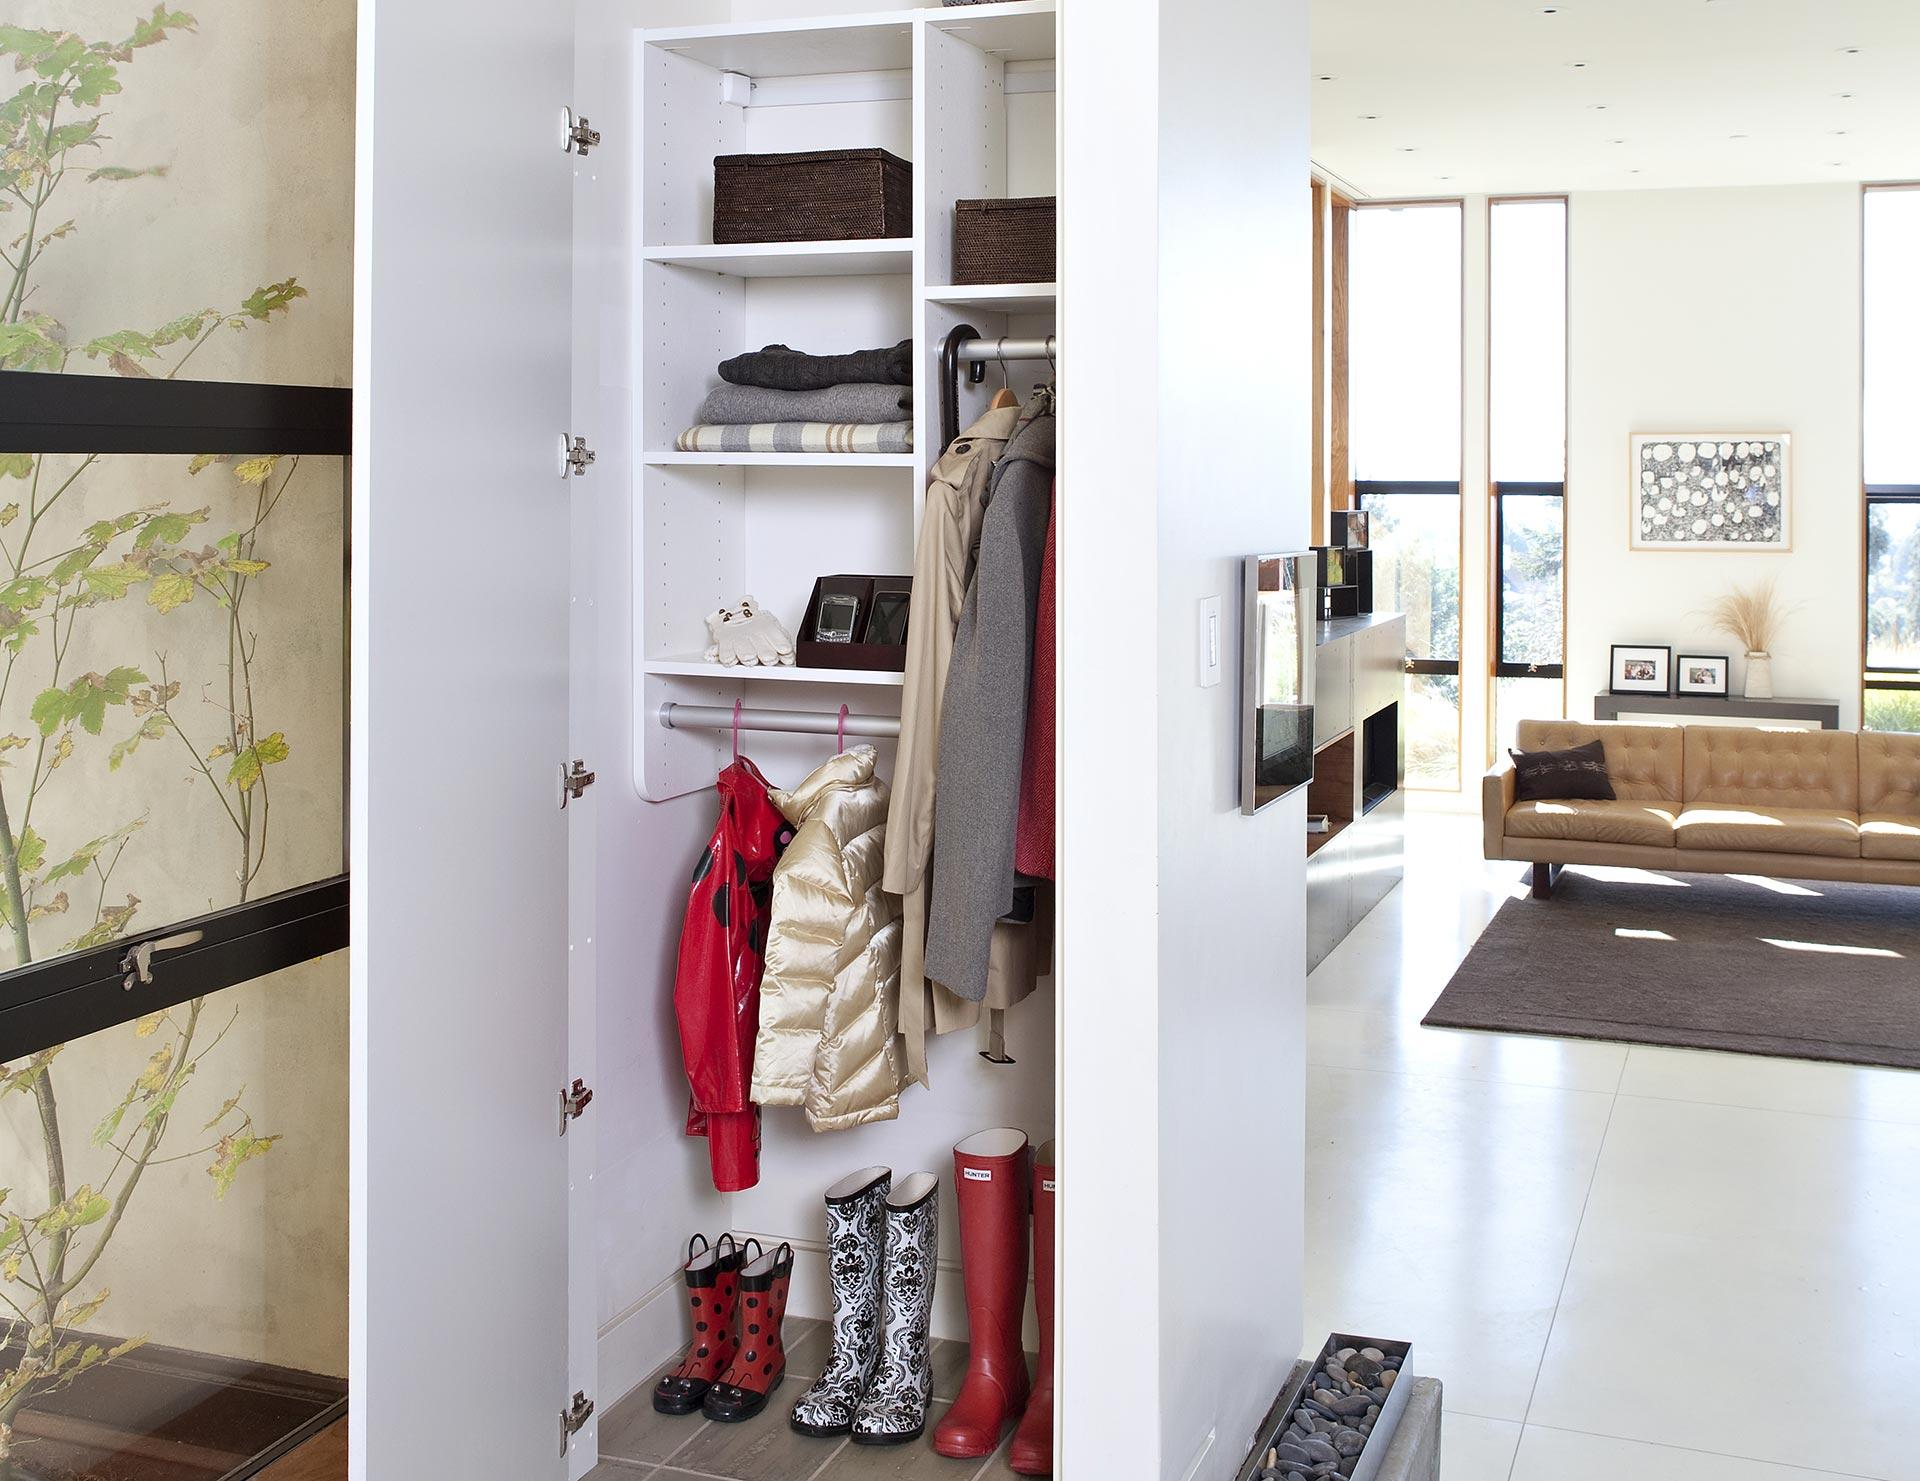 California Closet System | California Closets Nyc | How Much Is A California Closet